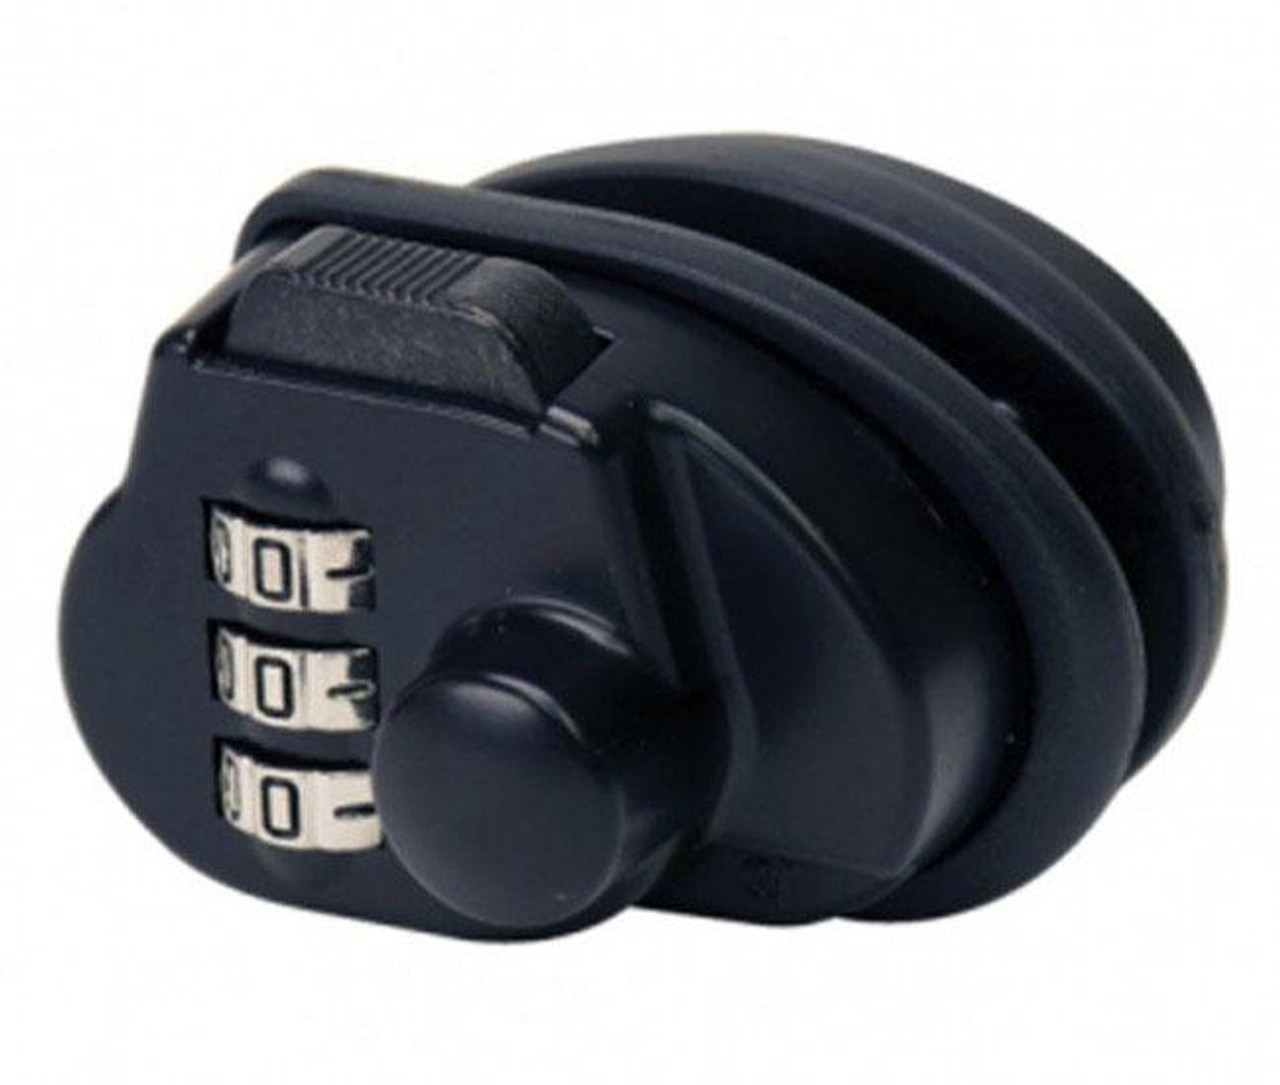 Axiom Combination Trigger Lock